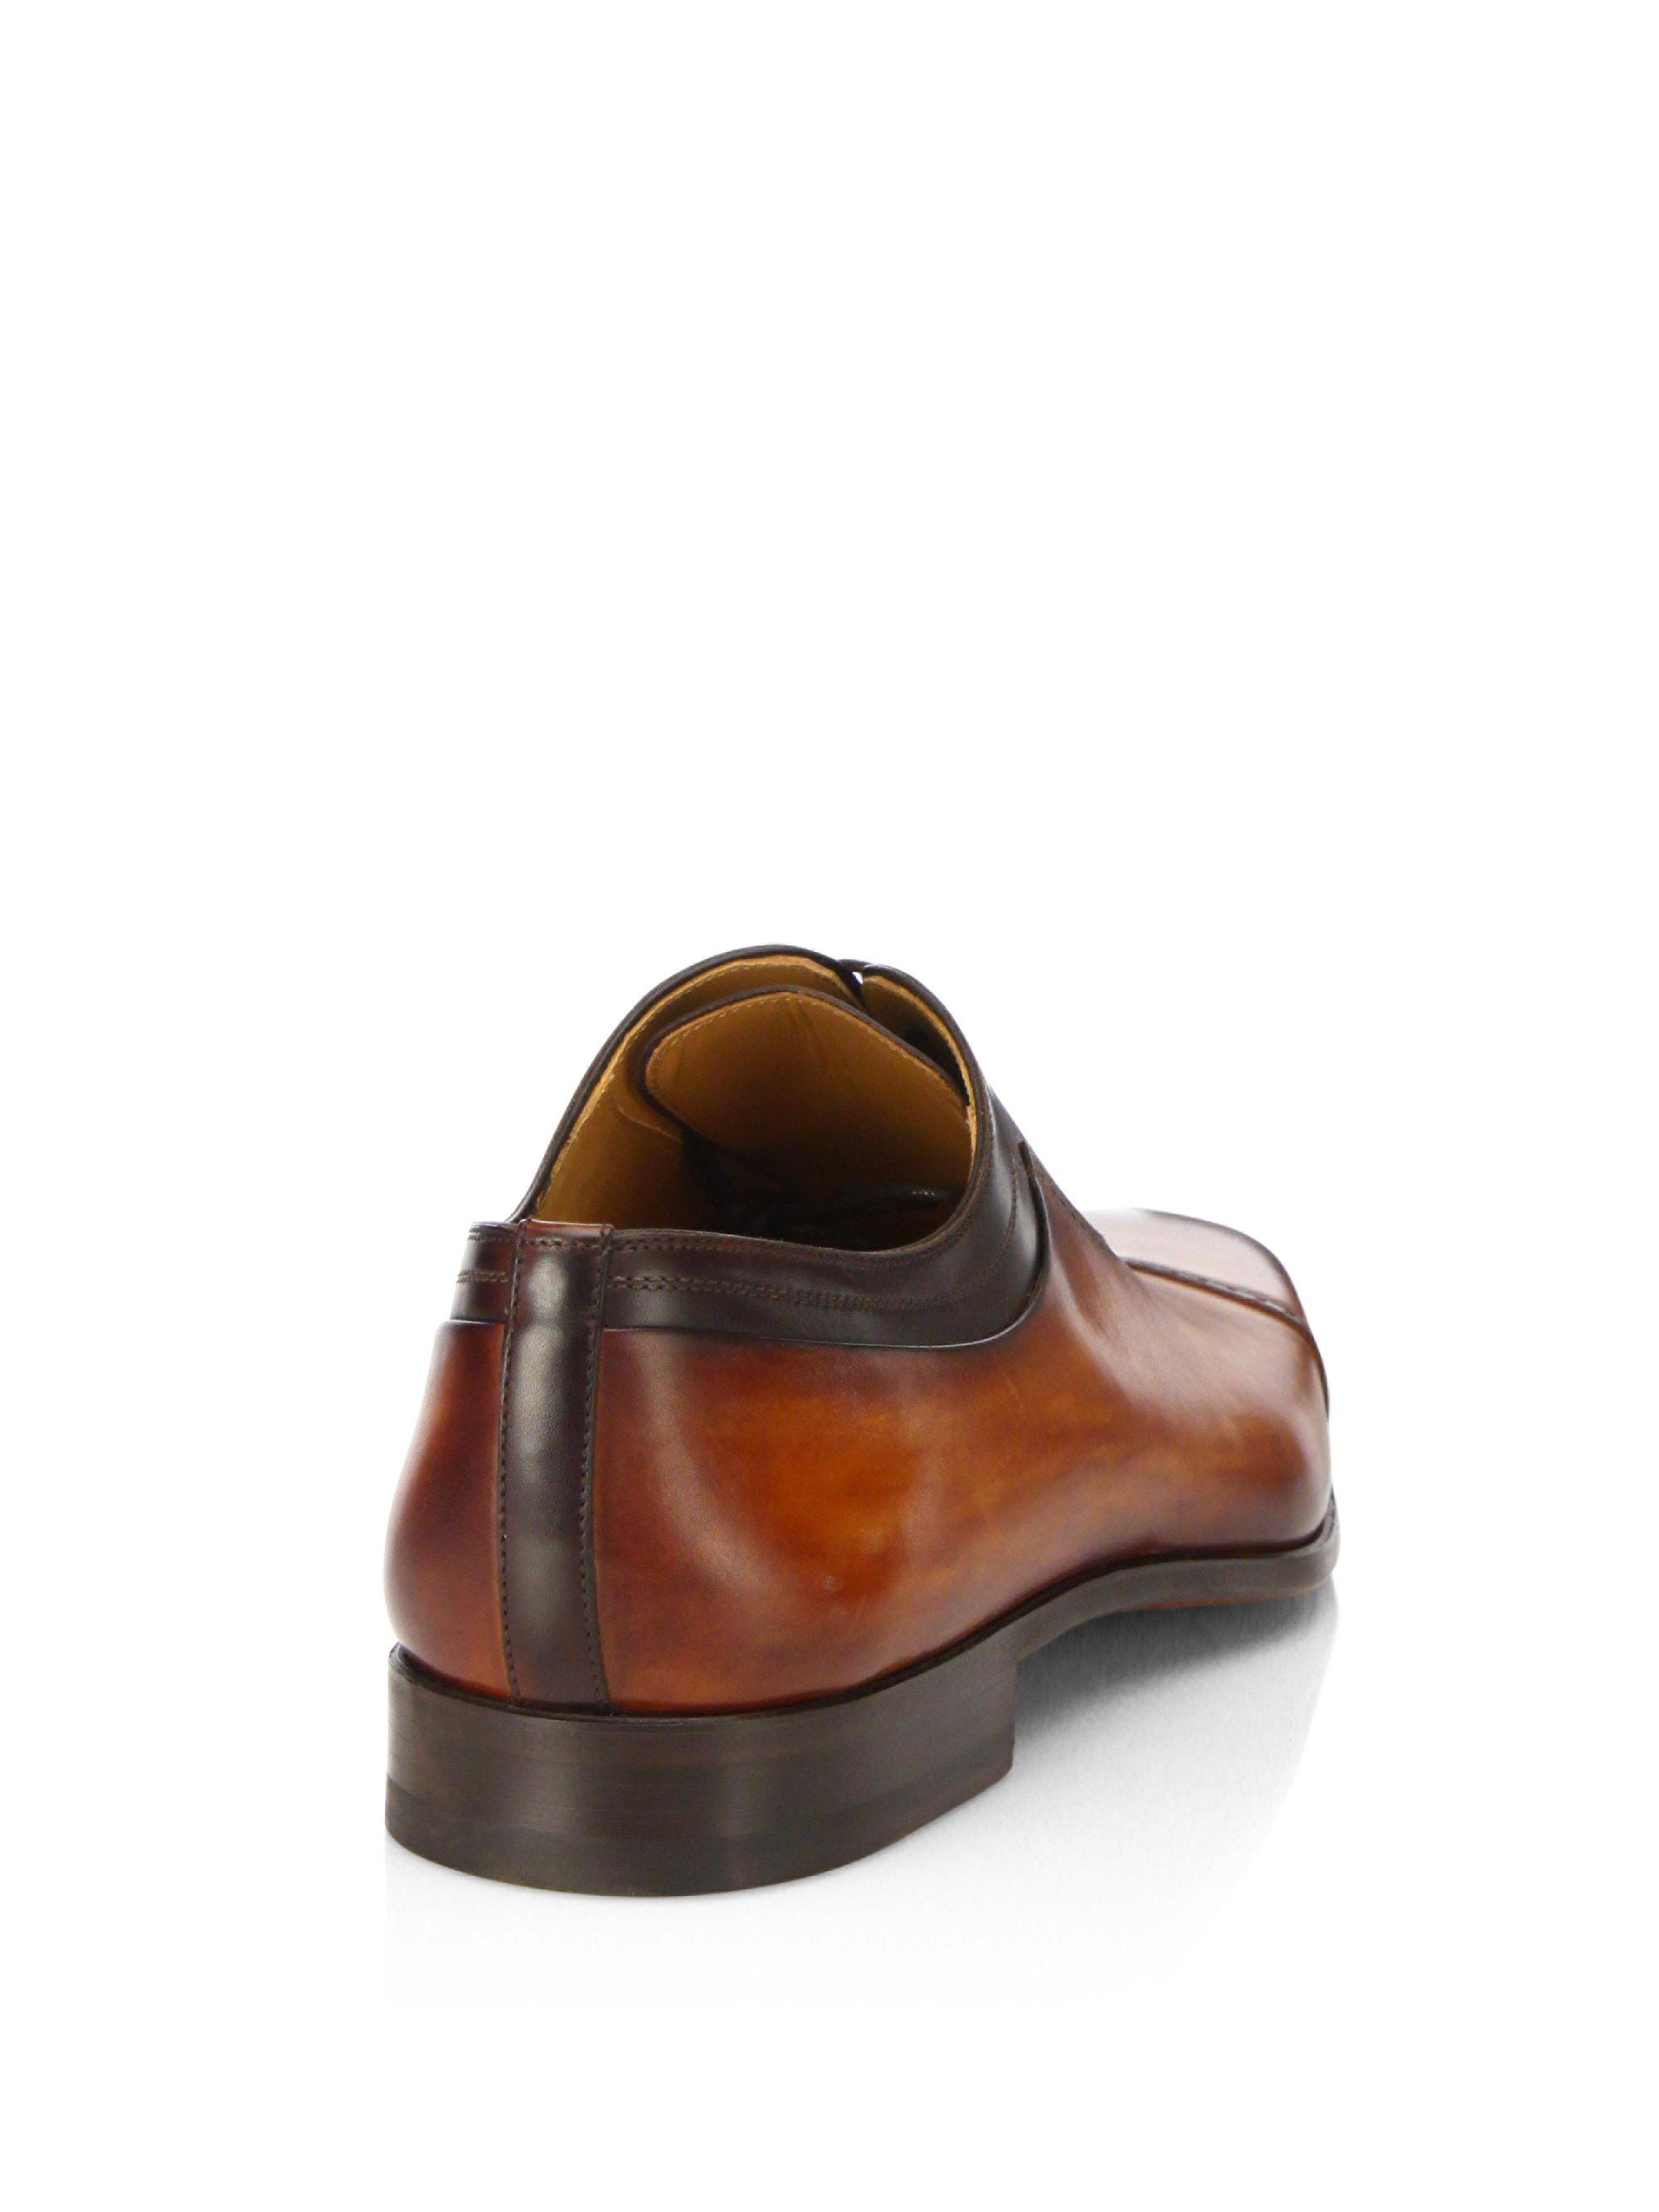 Saks Fifth AvenueCOLLECTION BY MAGNANNI Leather Oxfords